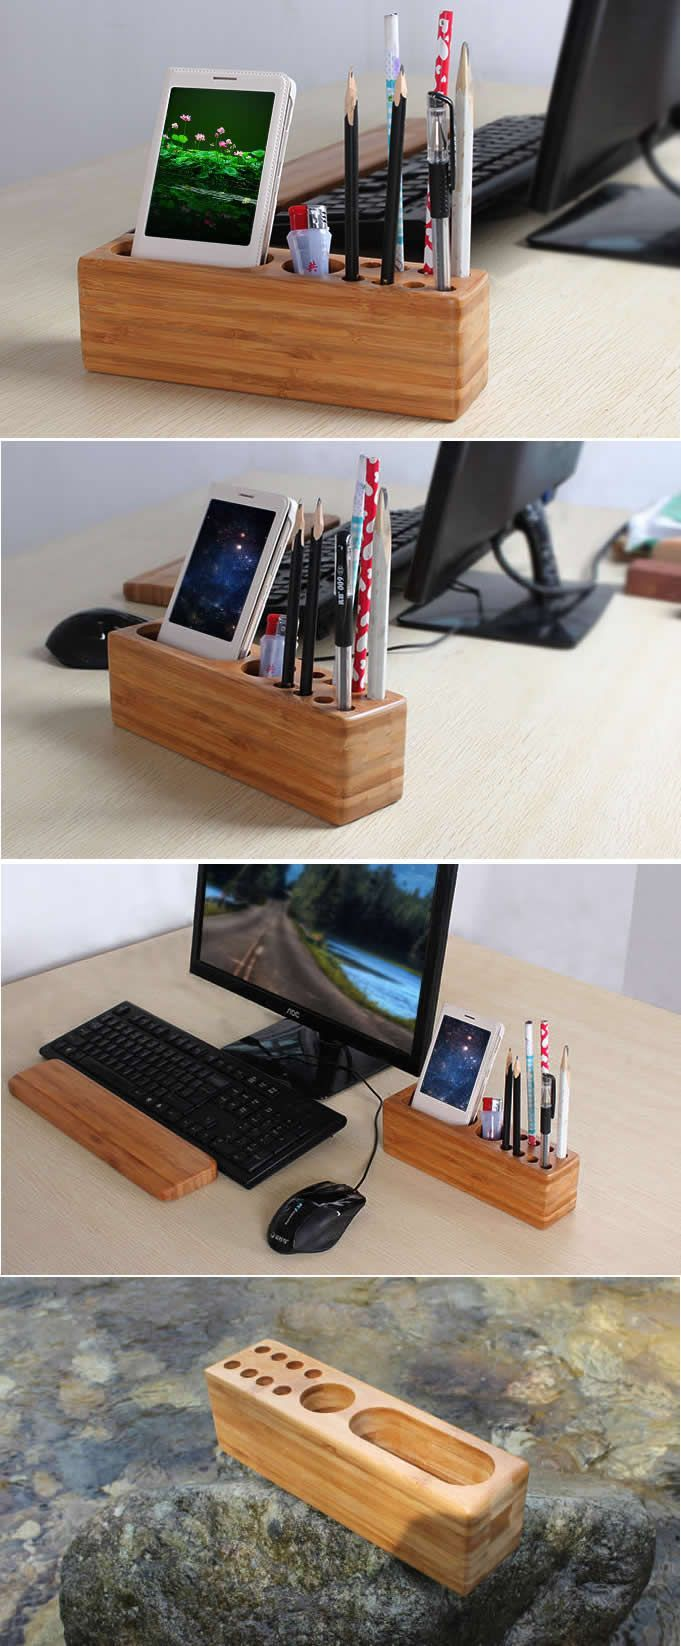 Wood Pen Pencil Holder Cell Phone Holder Stand Wooden Desk Organizer Wooden Desk Organizer Desk Organization Diy Wooden Pen Holder